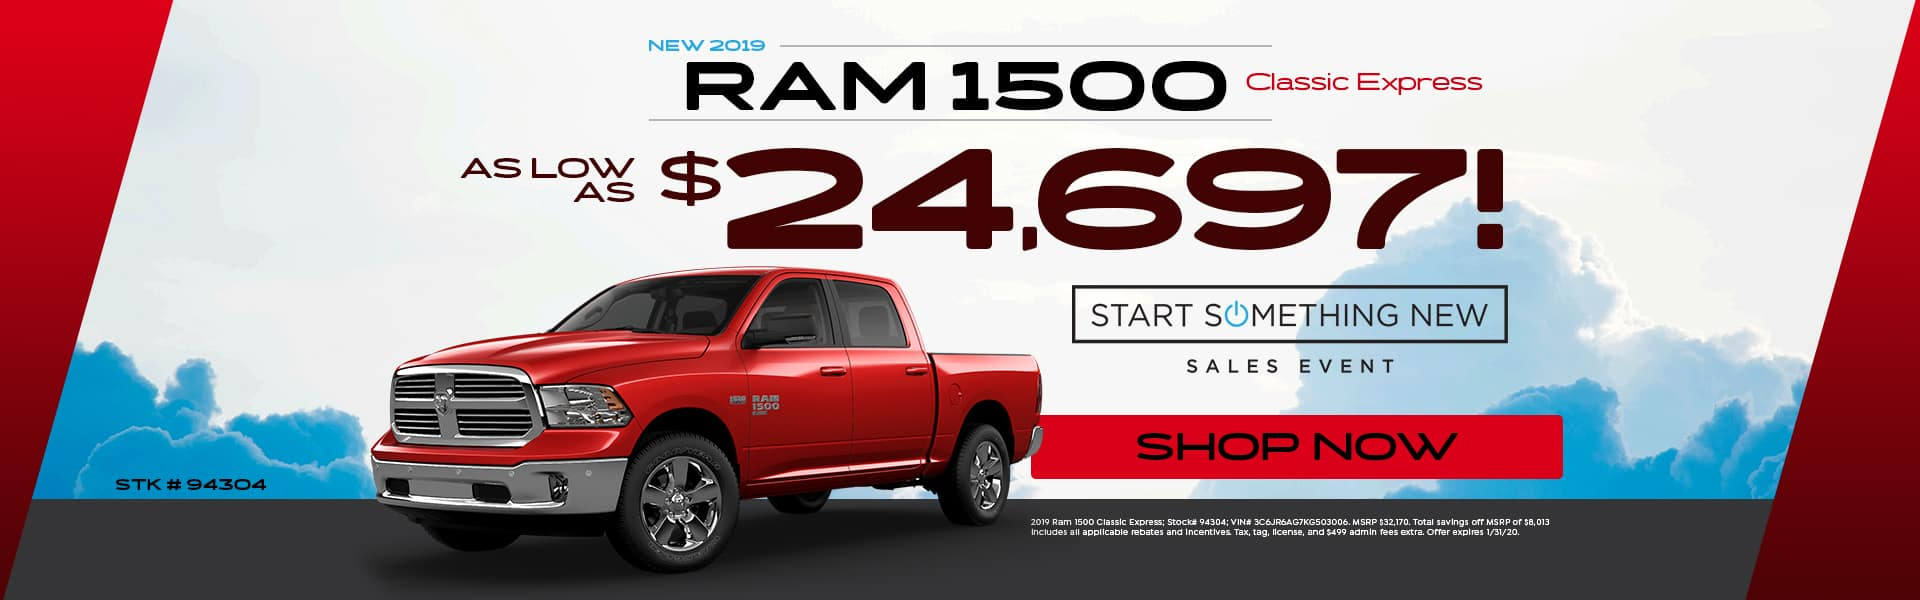 New 2019 Ram 1500 Classic Express - As Low As $24,697!